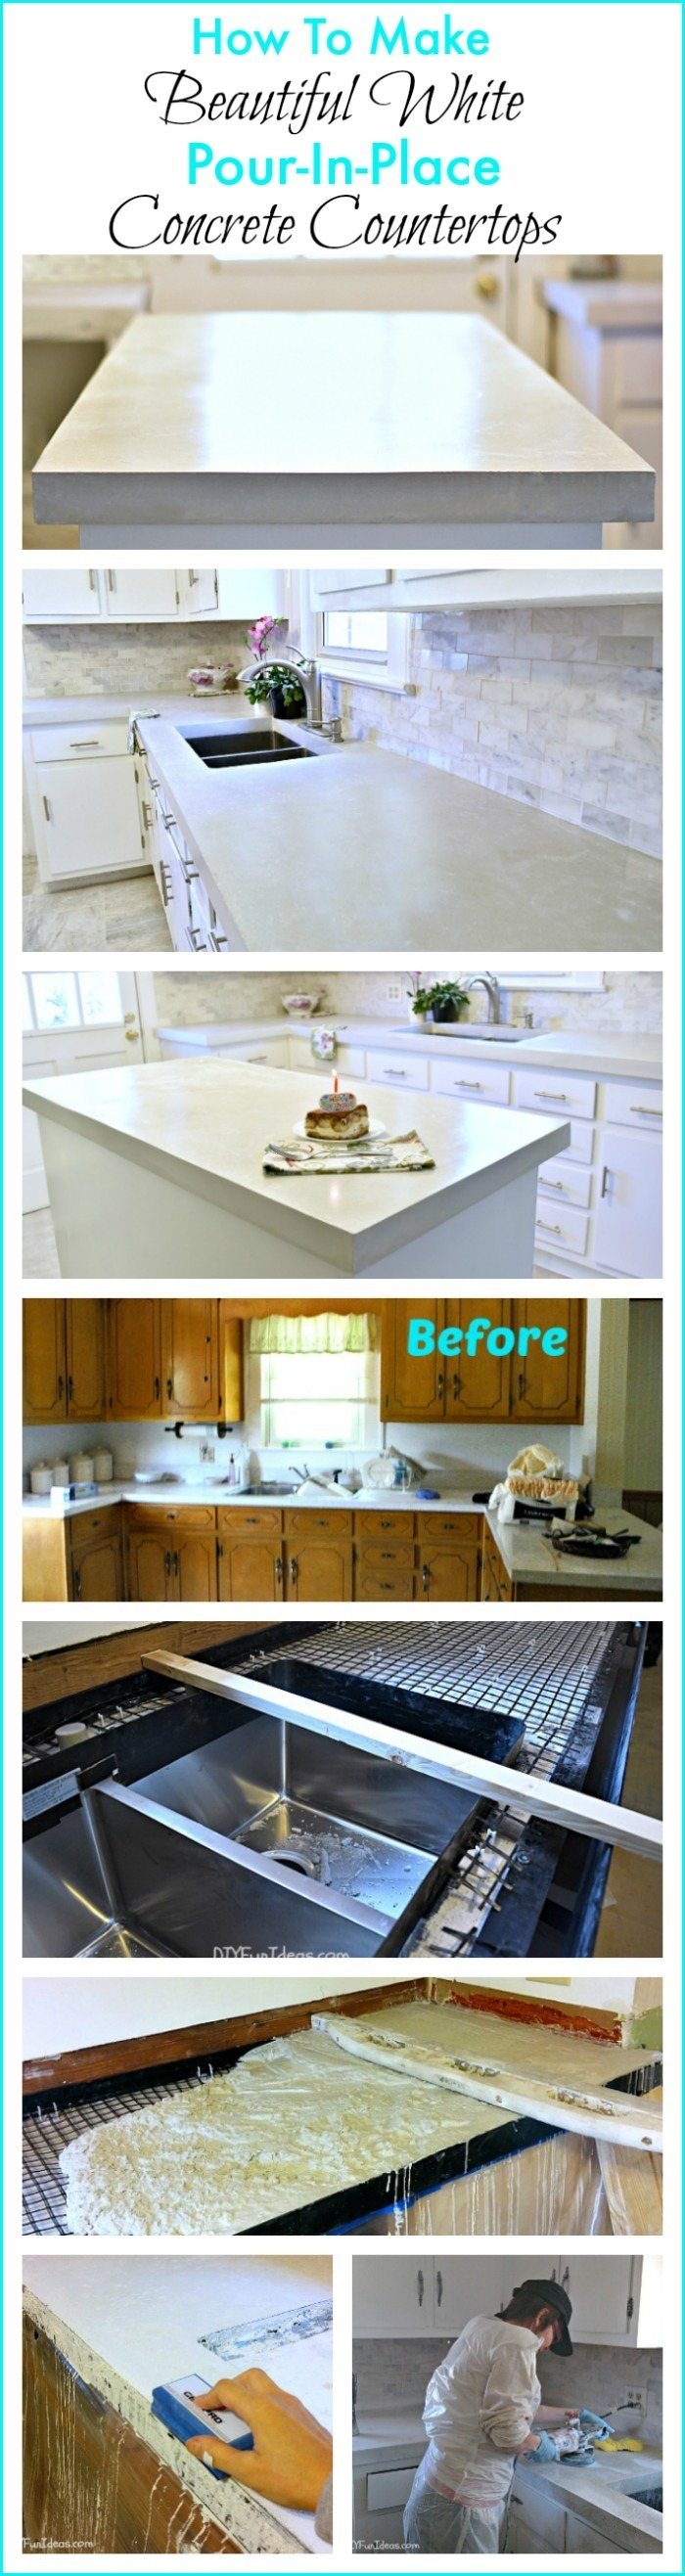 Gorgeous Diy Pour In Place Concrete Countertops And A Limited Time